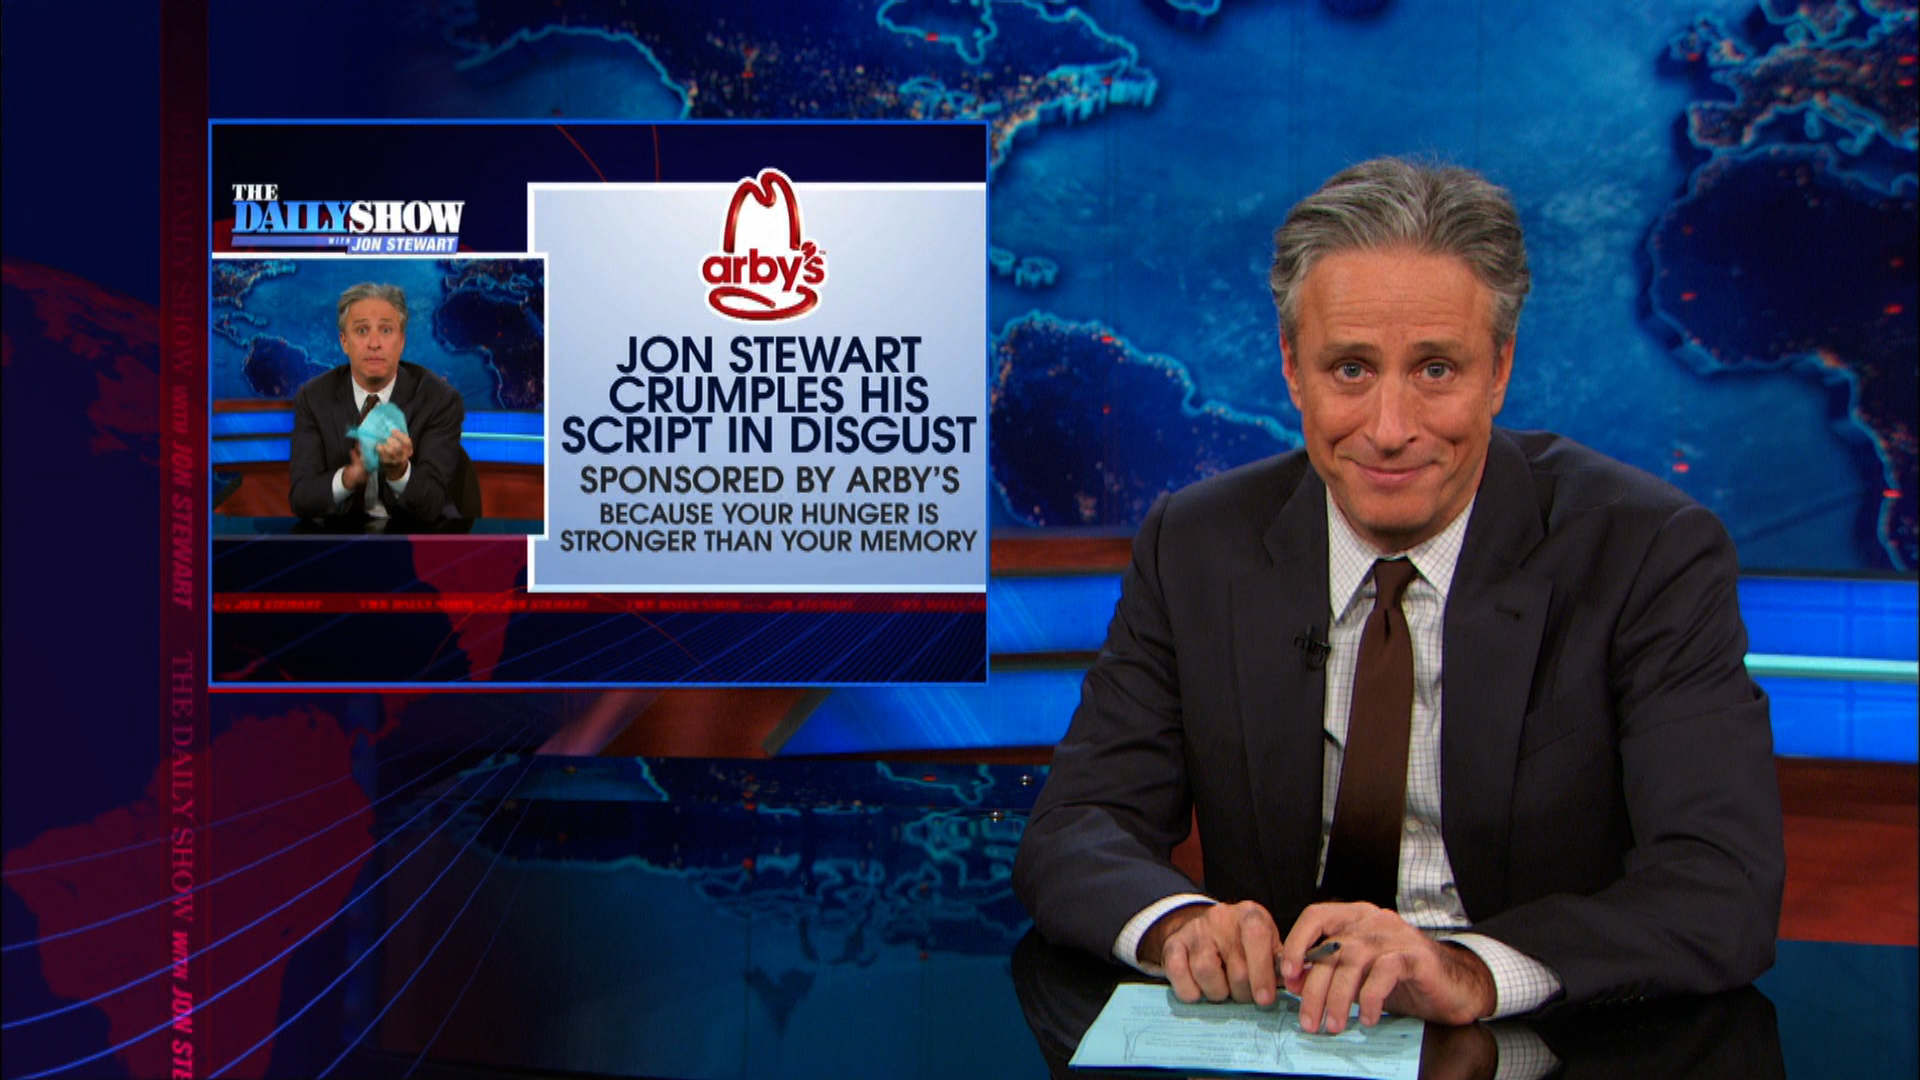 Jon Stewart mocks Atlanta-based Arby's on a regular basis. CREDIT; Comedy Central